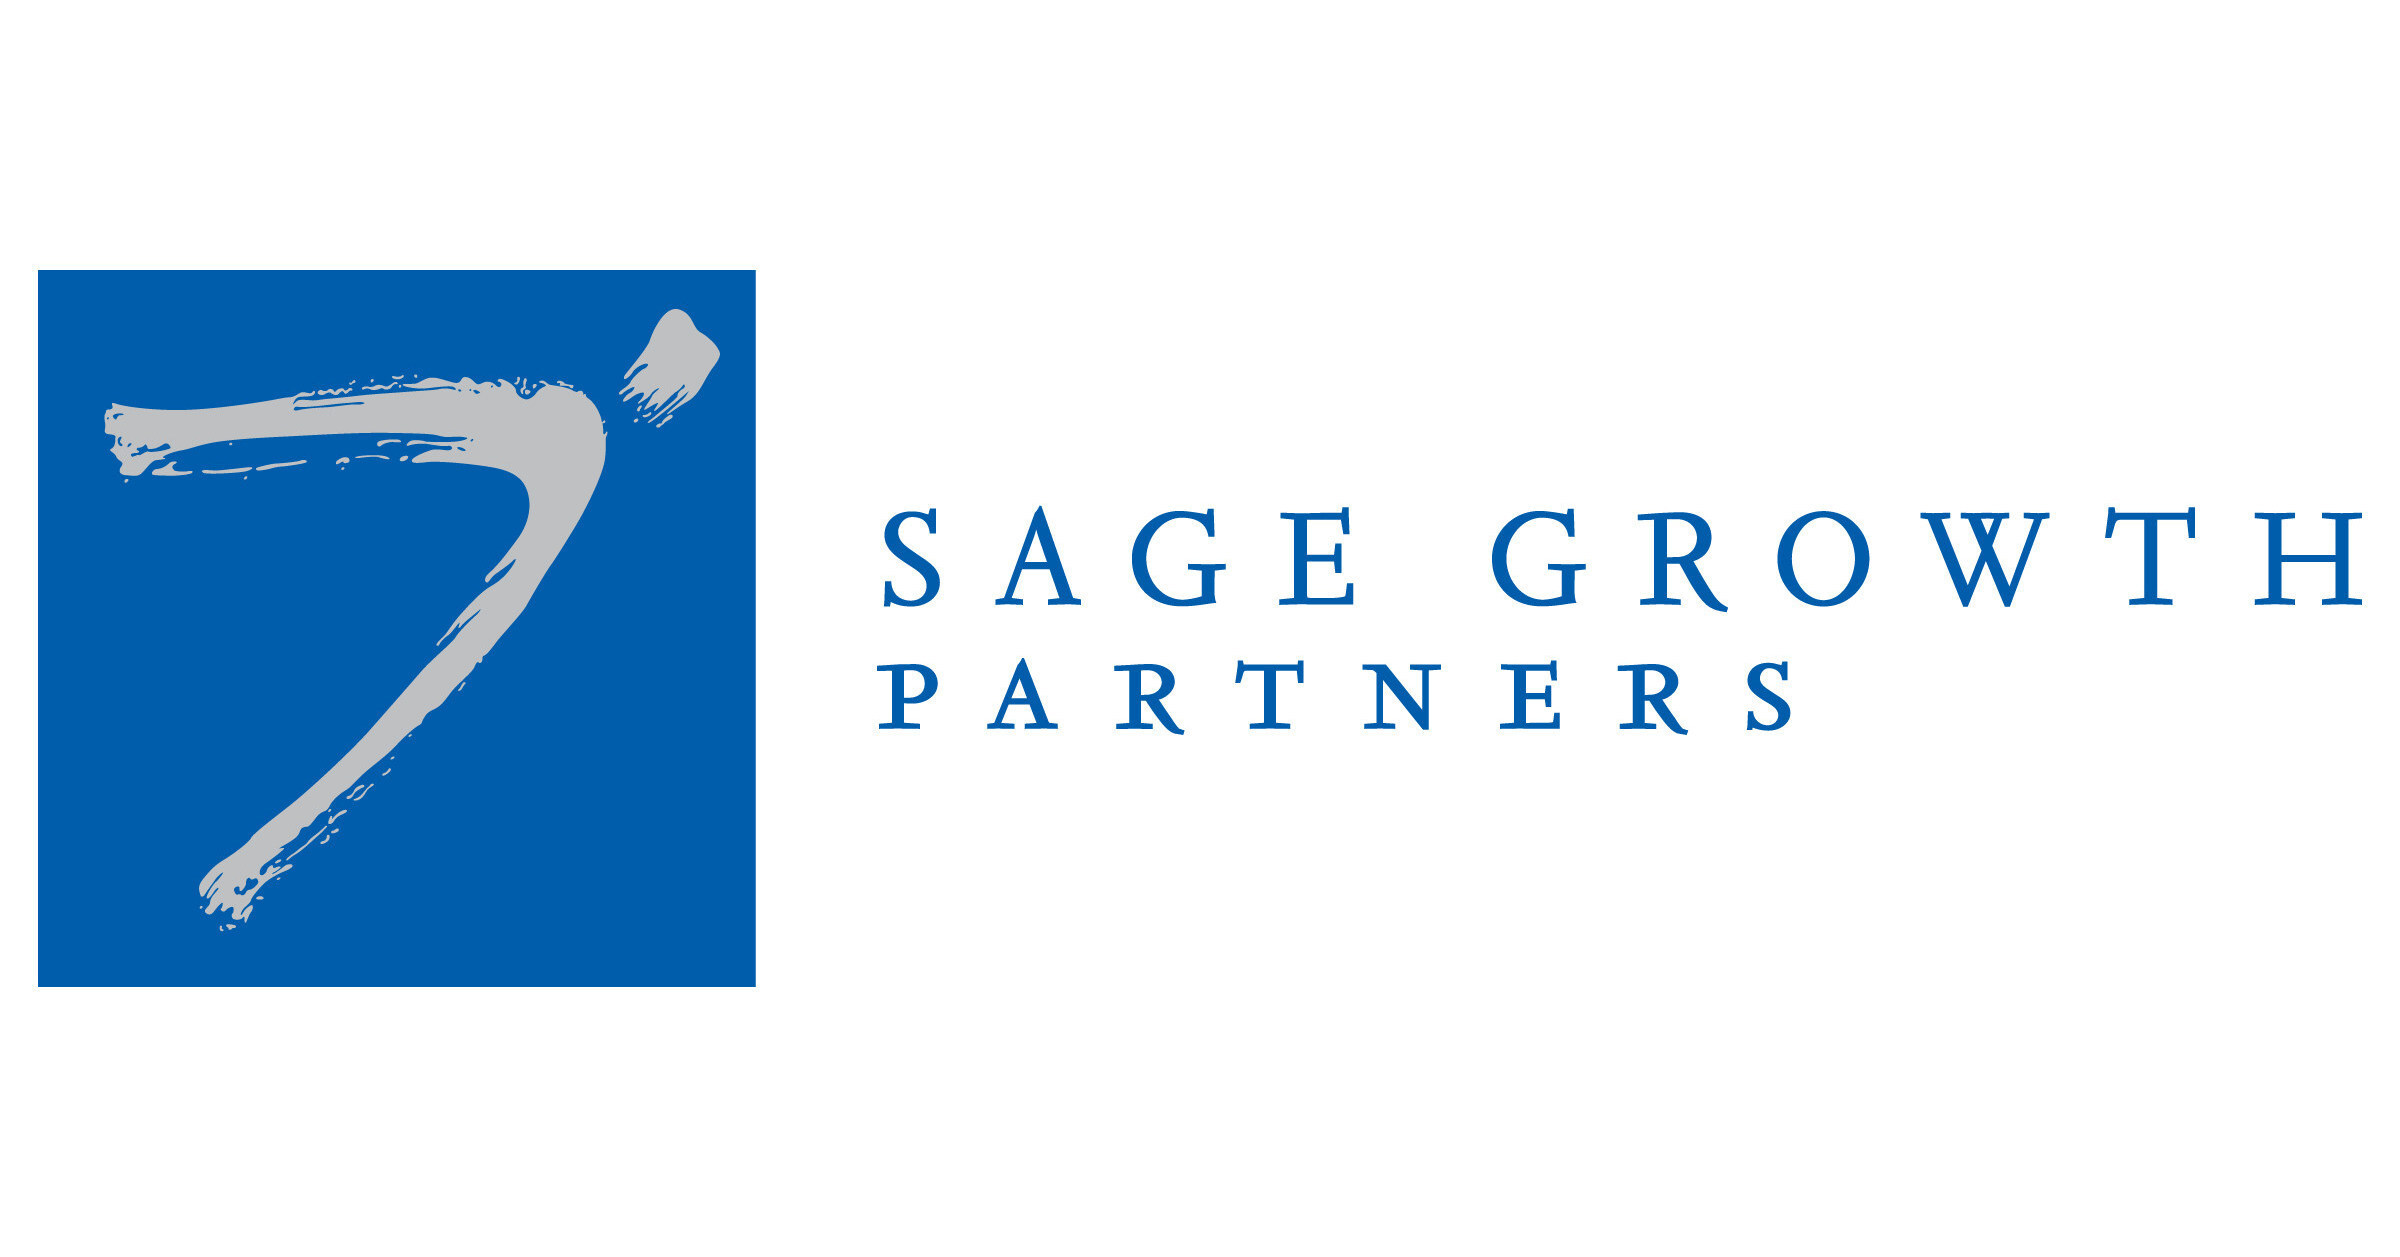 Sage Growth Partners Logo jpg?p=facebook.'